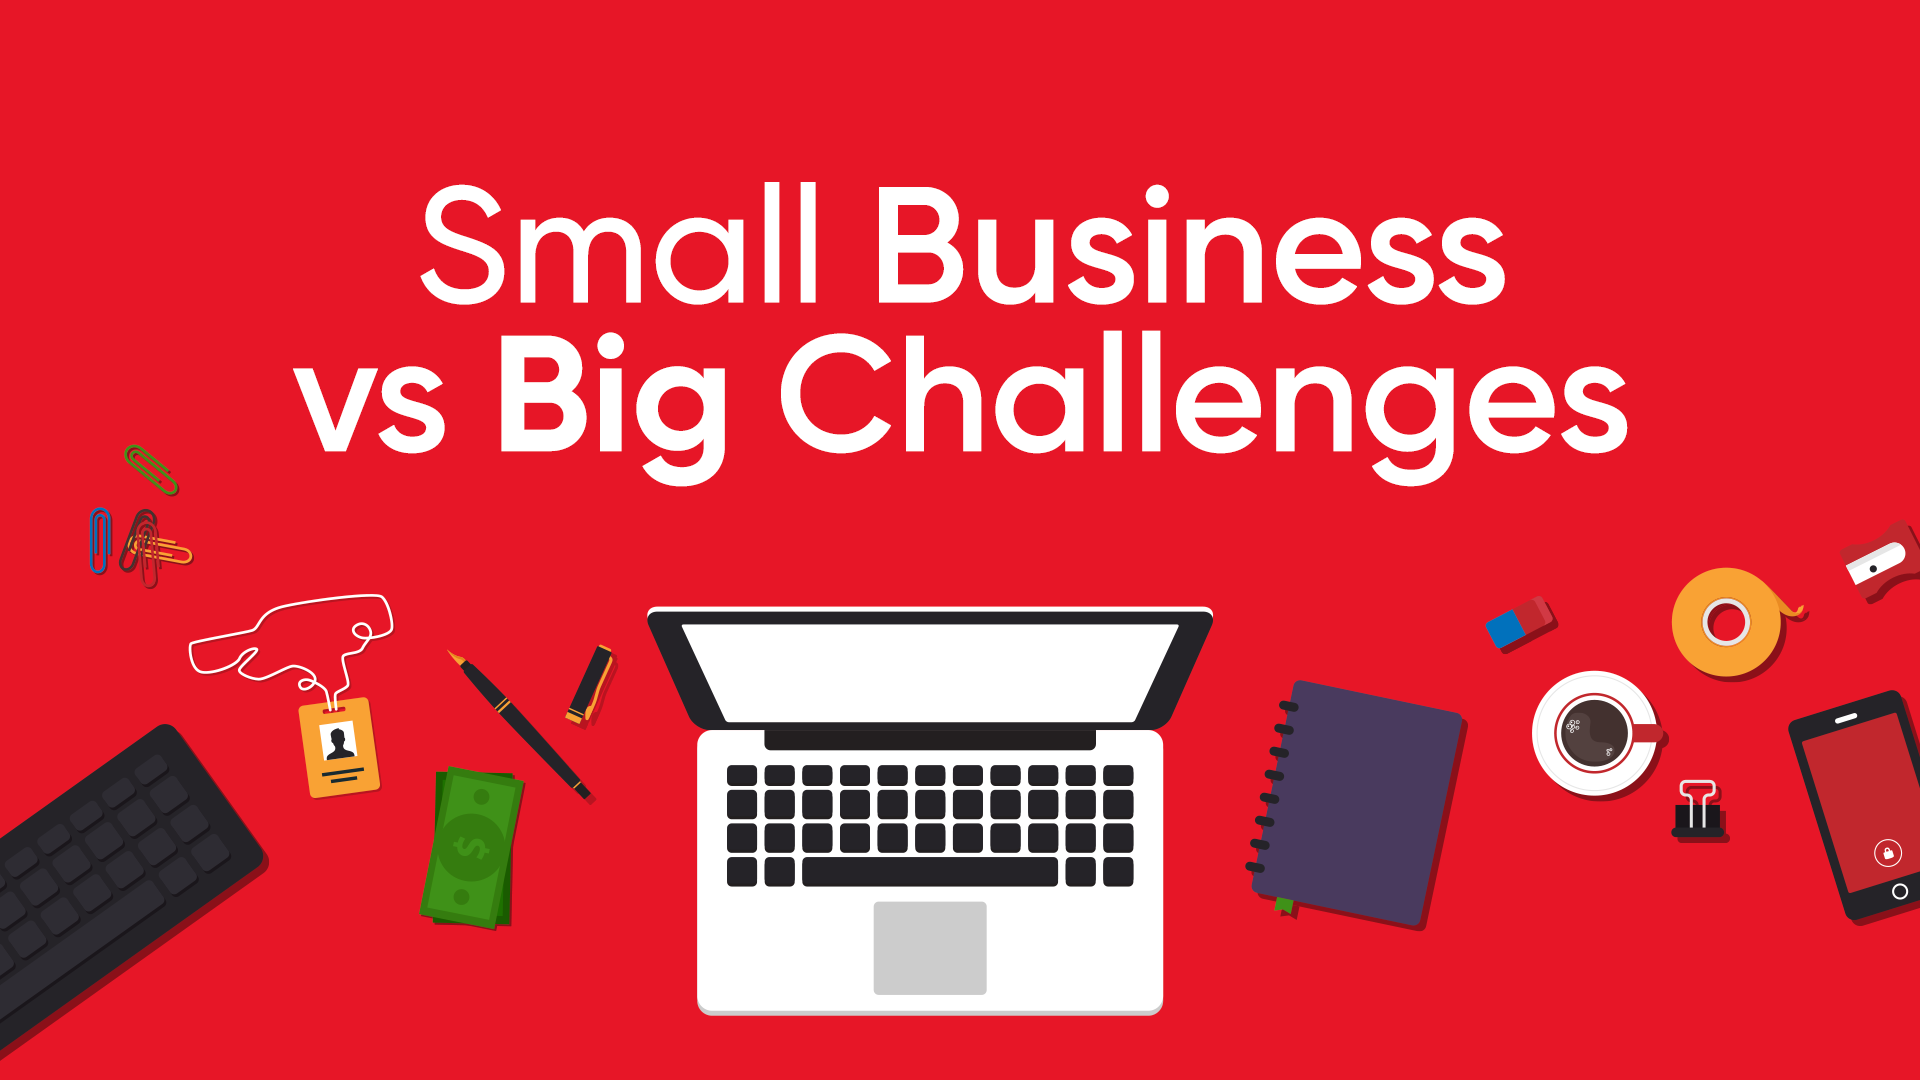 small business, small business tips, startup, startup tips, small business, big challenges, growing online small business, grow small business, small business growth, small business advice, small business strategies, business owners, startup founders